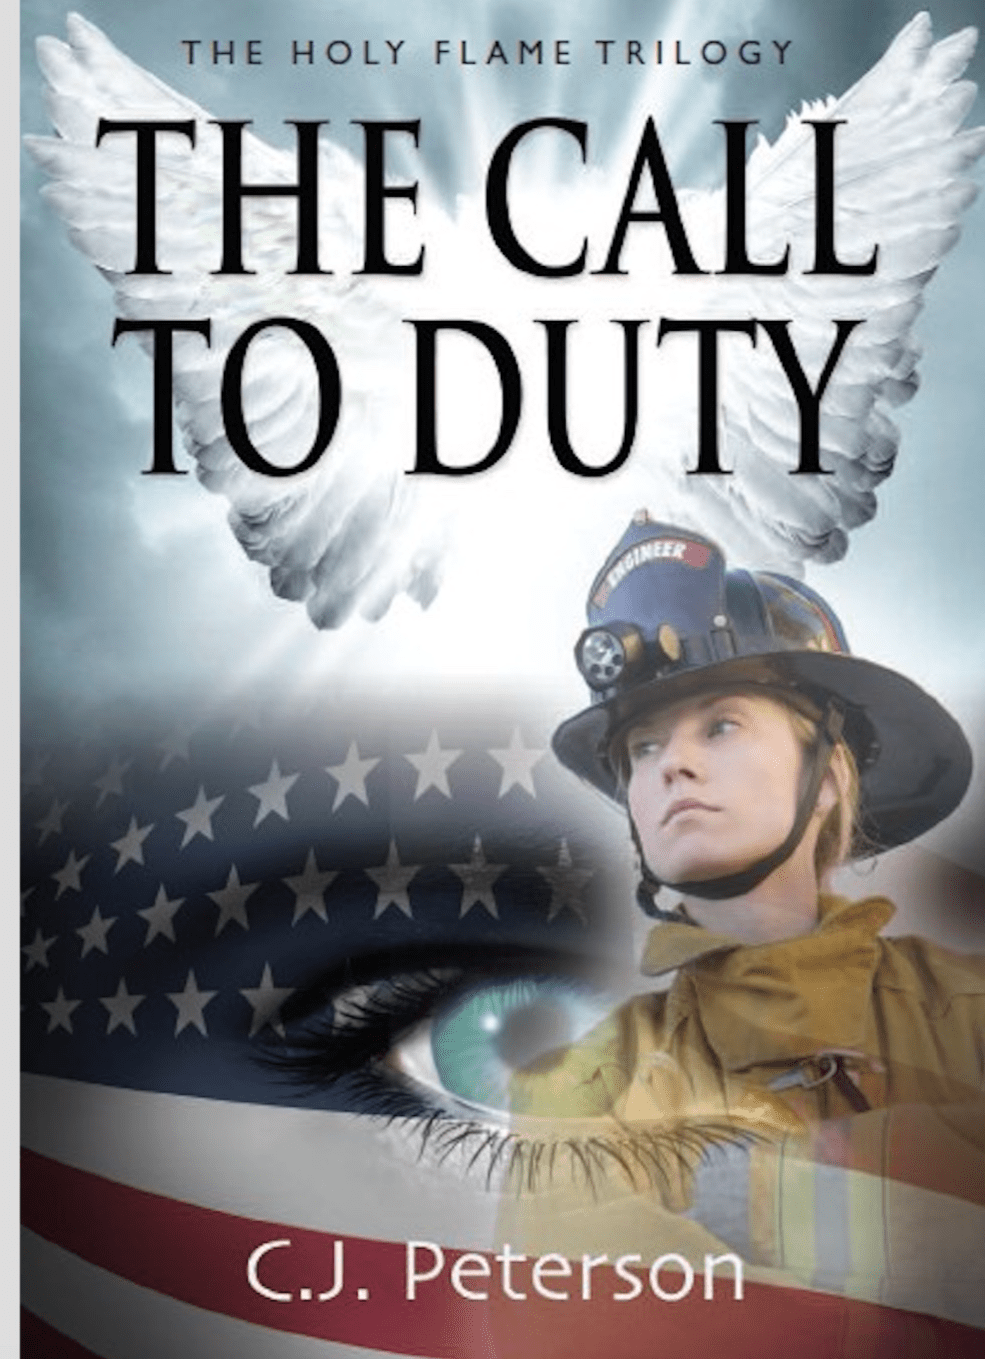 THE CALL TO DUTY (Book 1, The Holy Flame Trilogy)